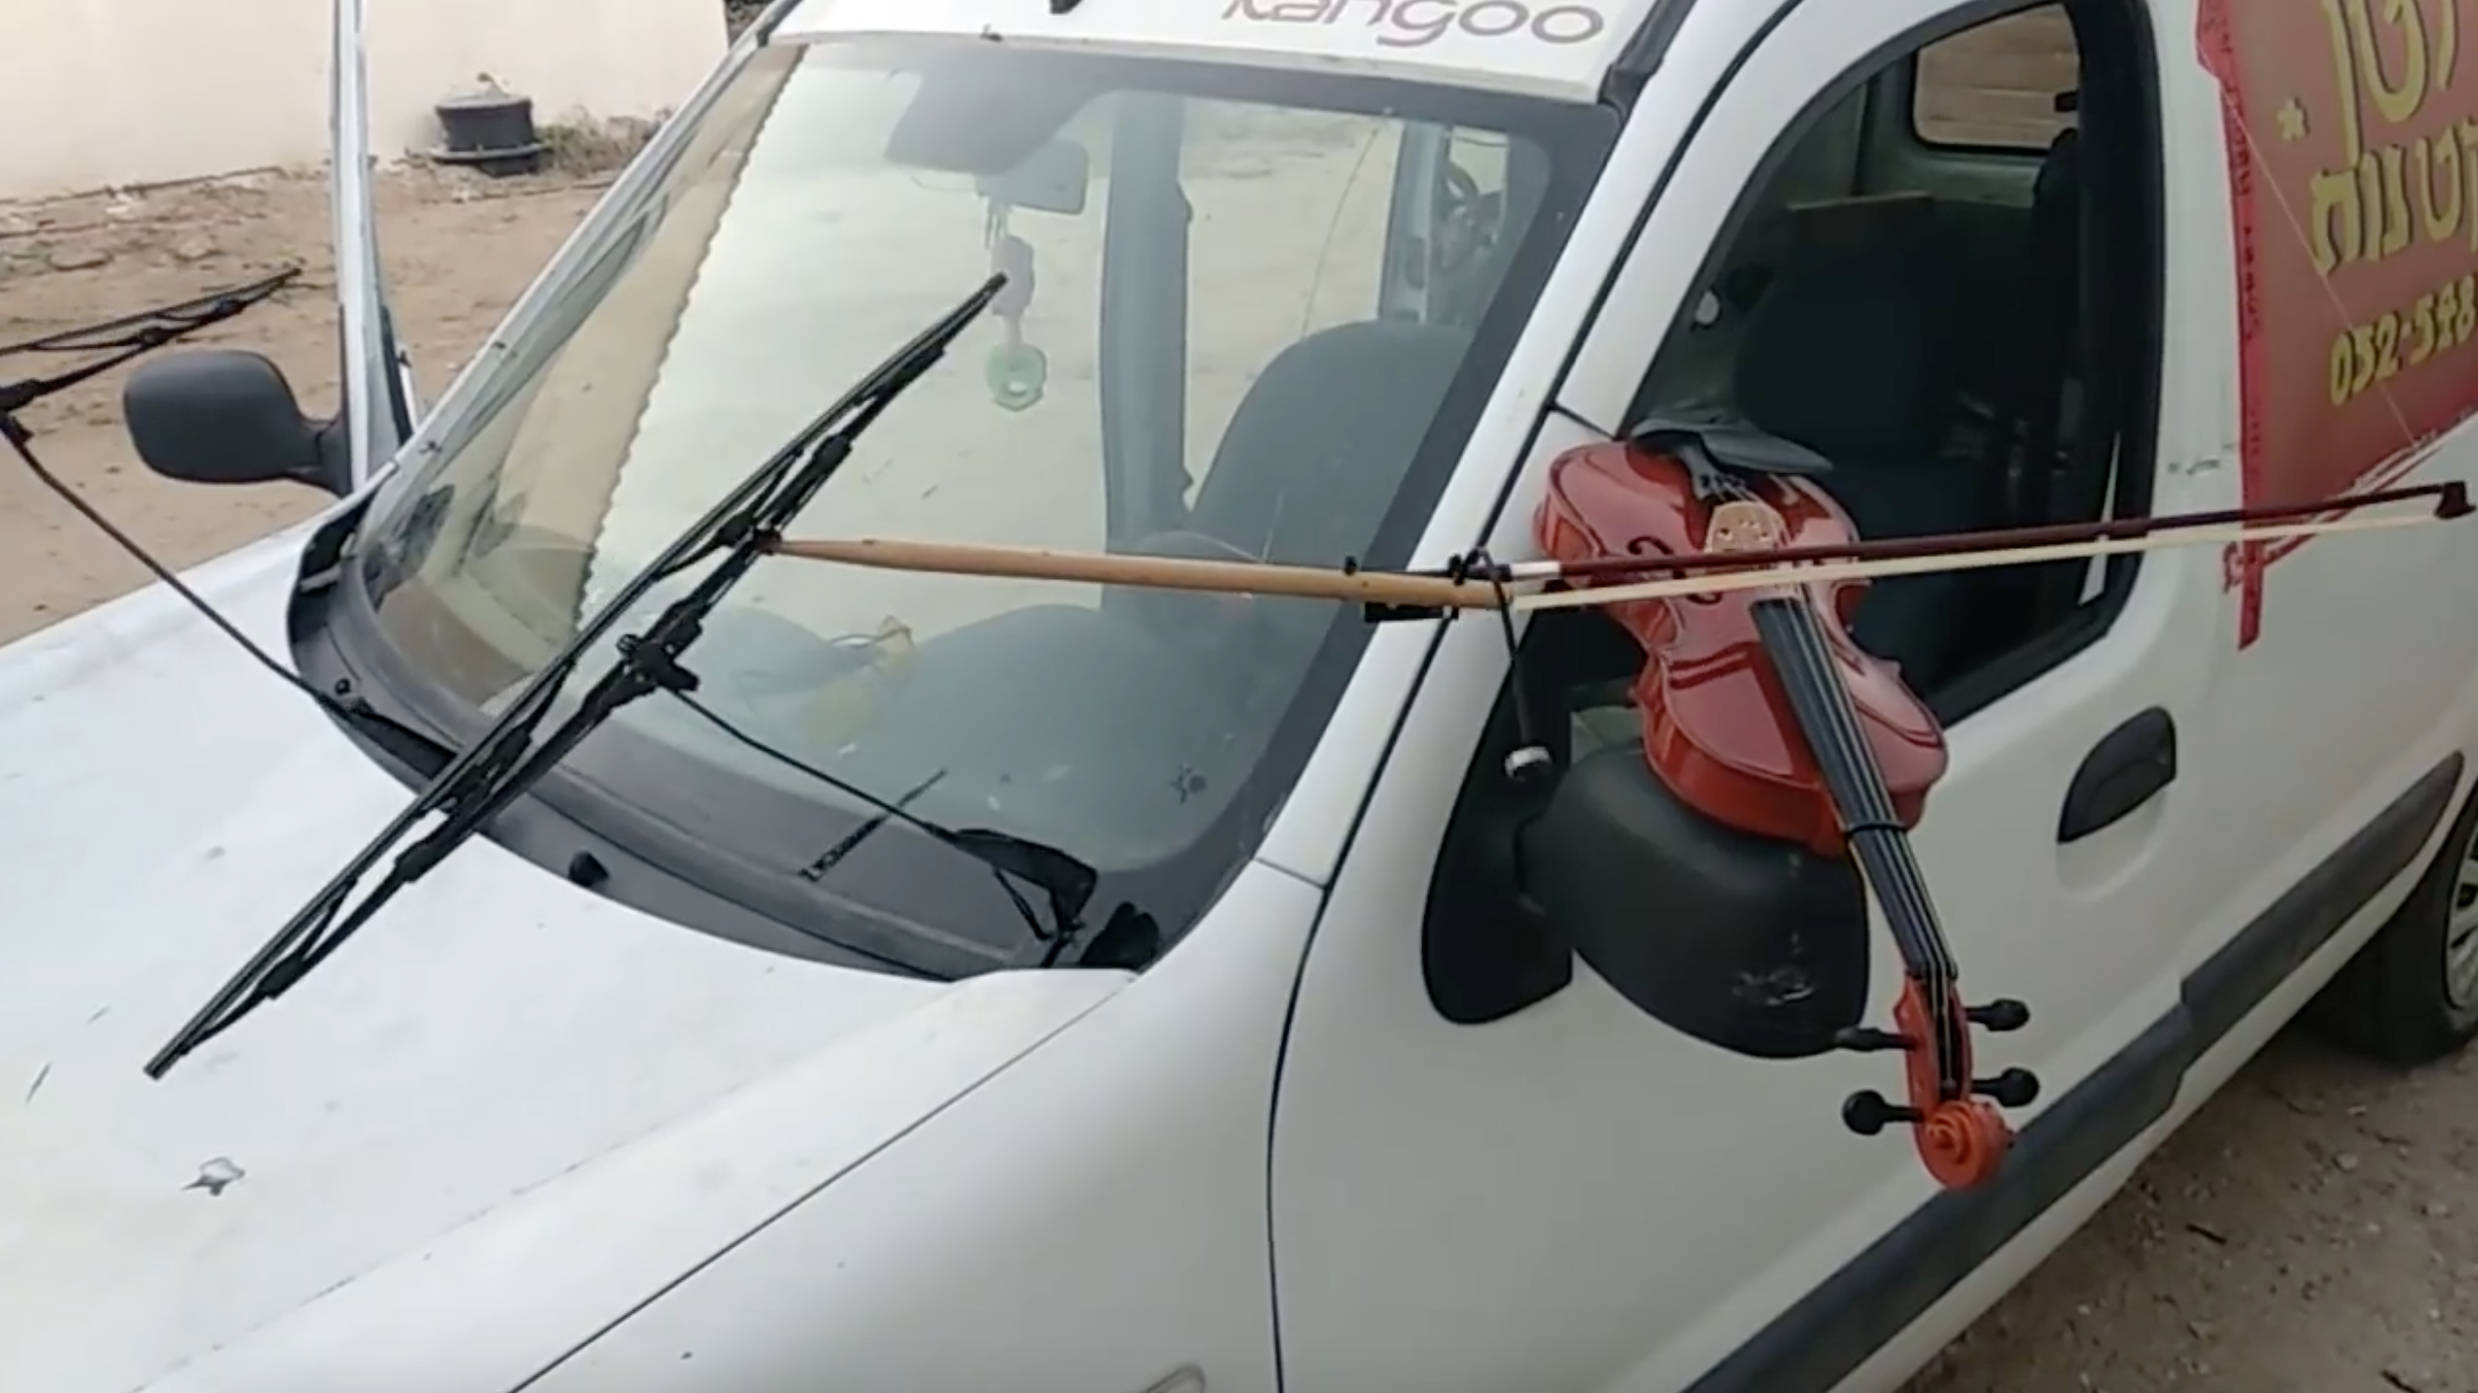 This guy strapped a violin bow to his windscreen wiper – and it went viral